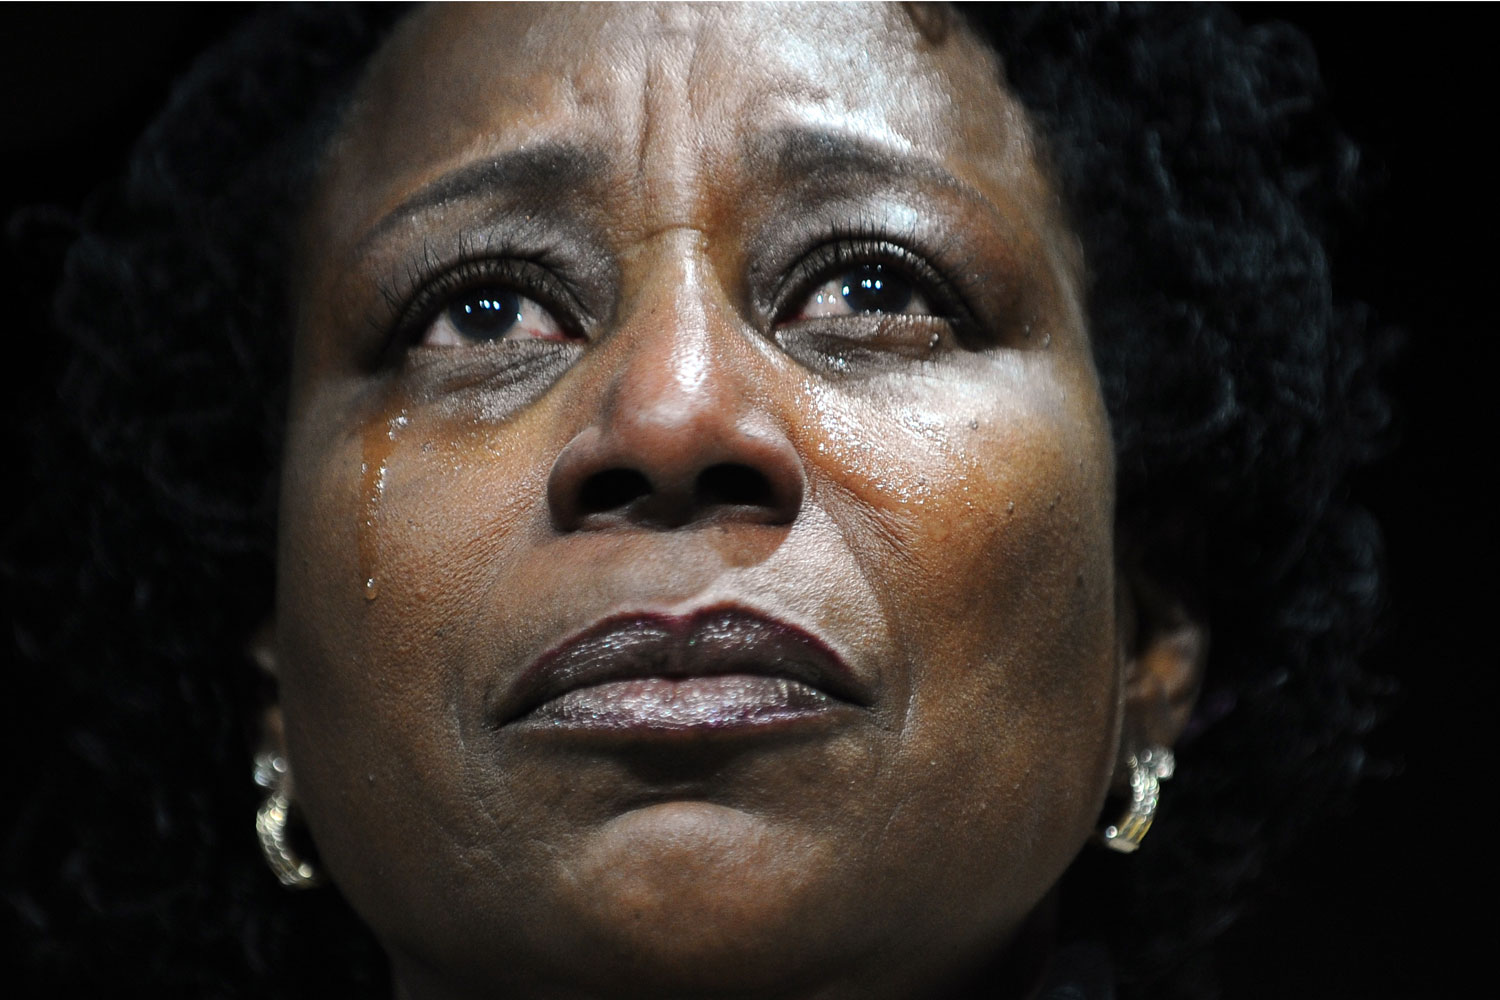 January 11, 2012. A supporter cries as she listens to US President Barack Obama address a campaign event at the University of Illinois at Chicago in Chicago, Illinois.